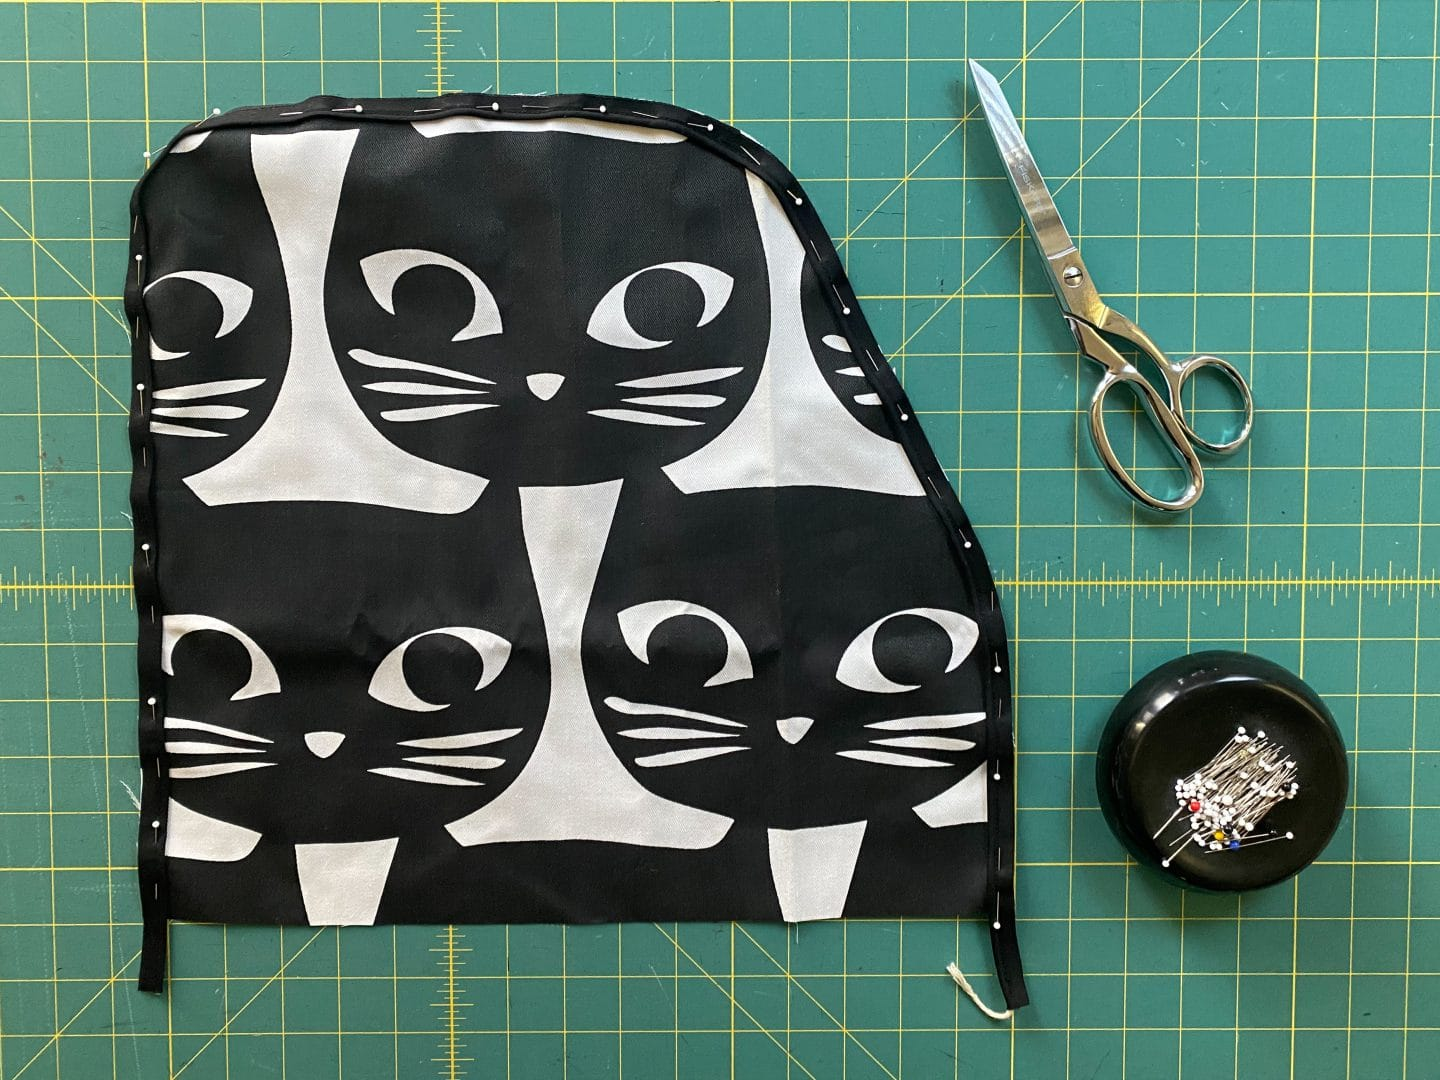 Image of side pattern piece for serger cover with piping pinned to it